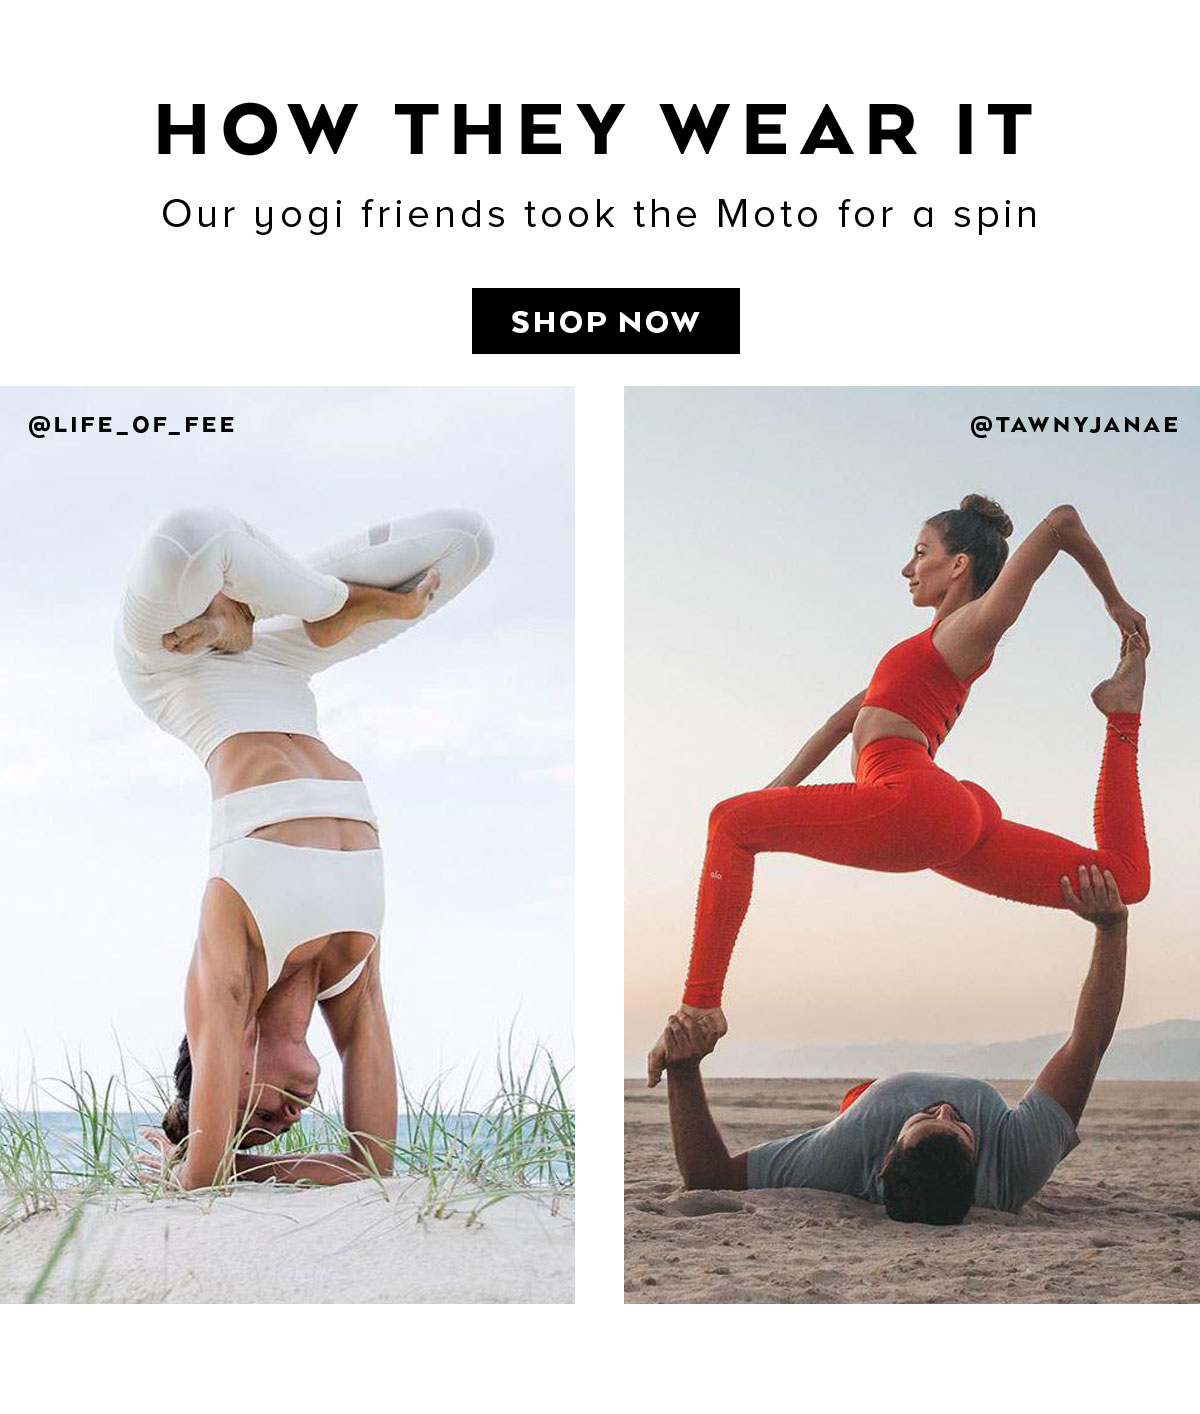 HOW THEY WEAR IT. Our yogi friends took the Moto for a spin. SHOP THE LOOKS